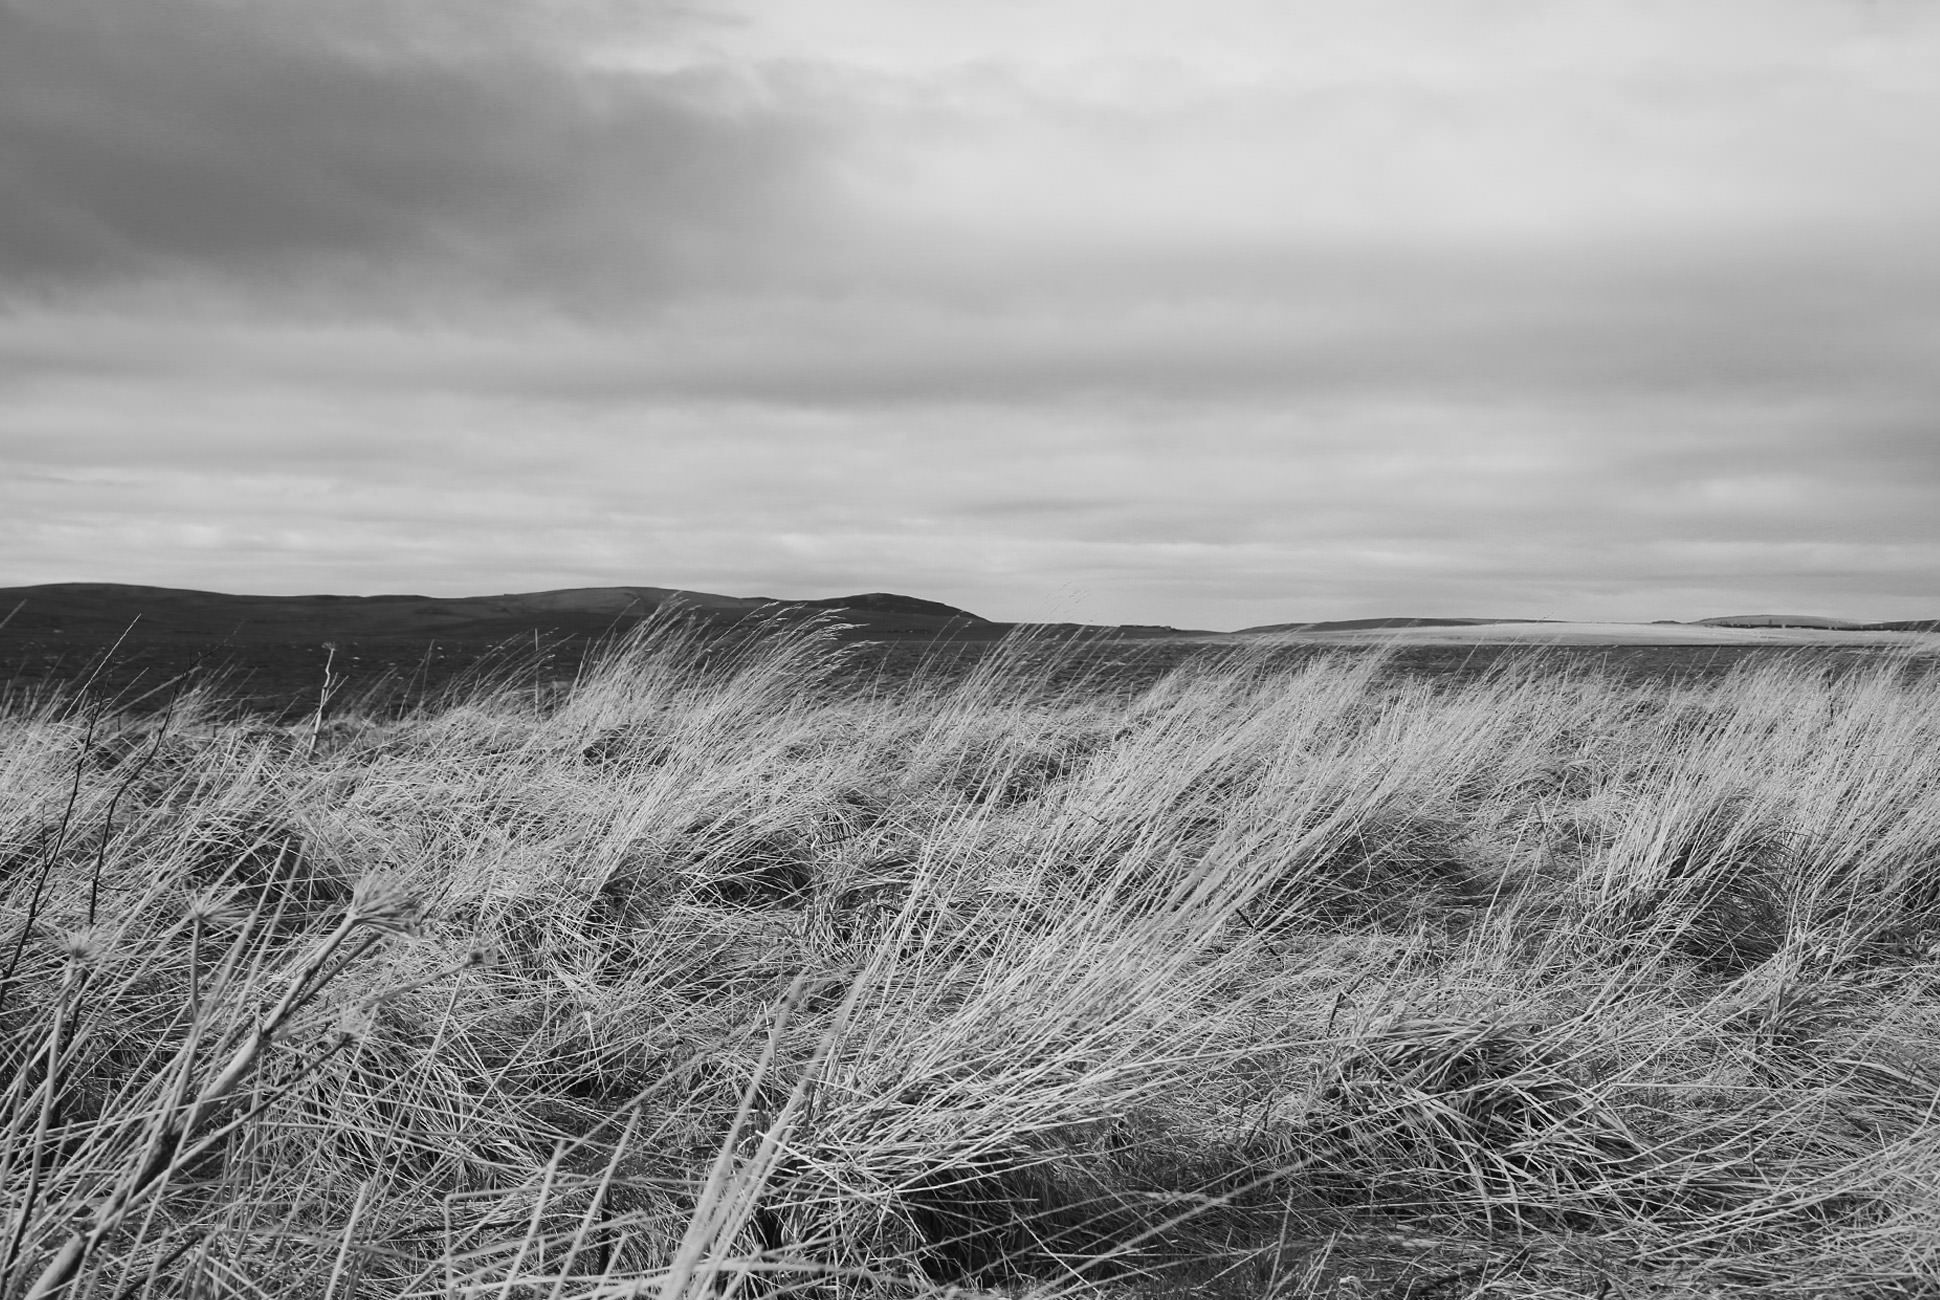 A quiet moment in the Orkney Islands. Photo by Ben Bowers.